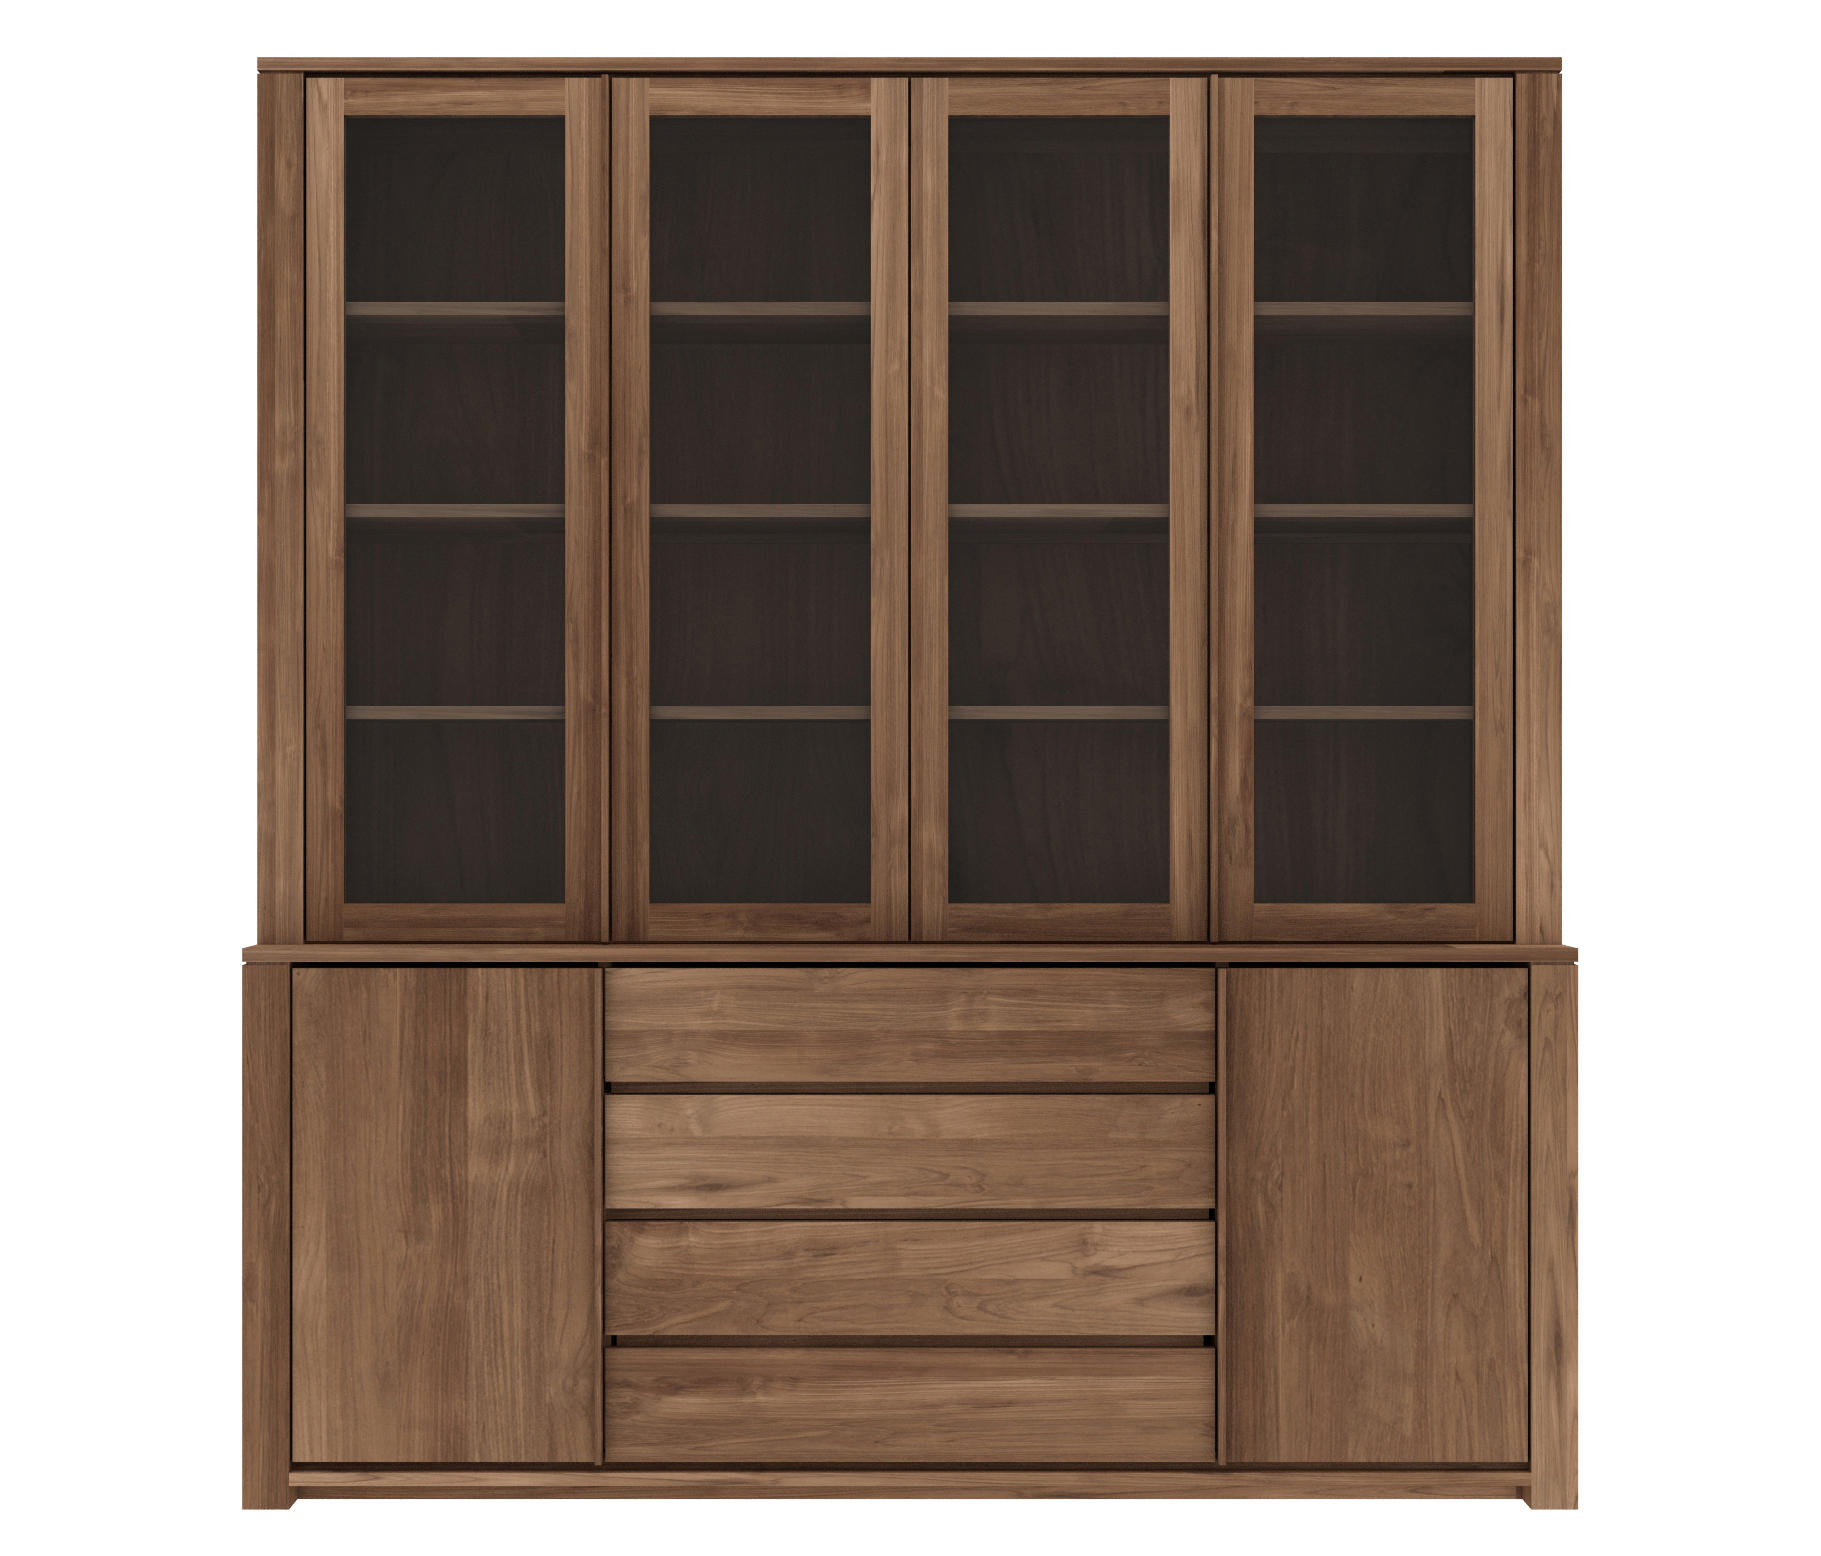 Teak Lodge Cupboard Display Cabinets From Ethnicraft Architonic